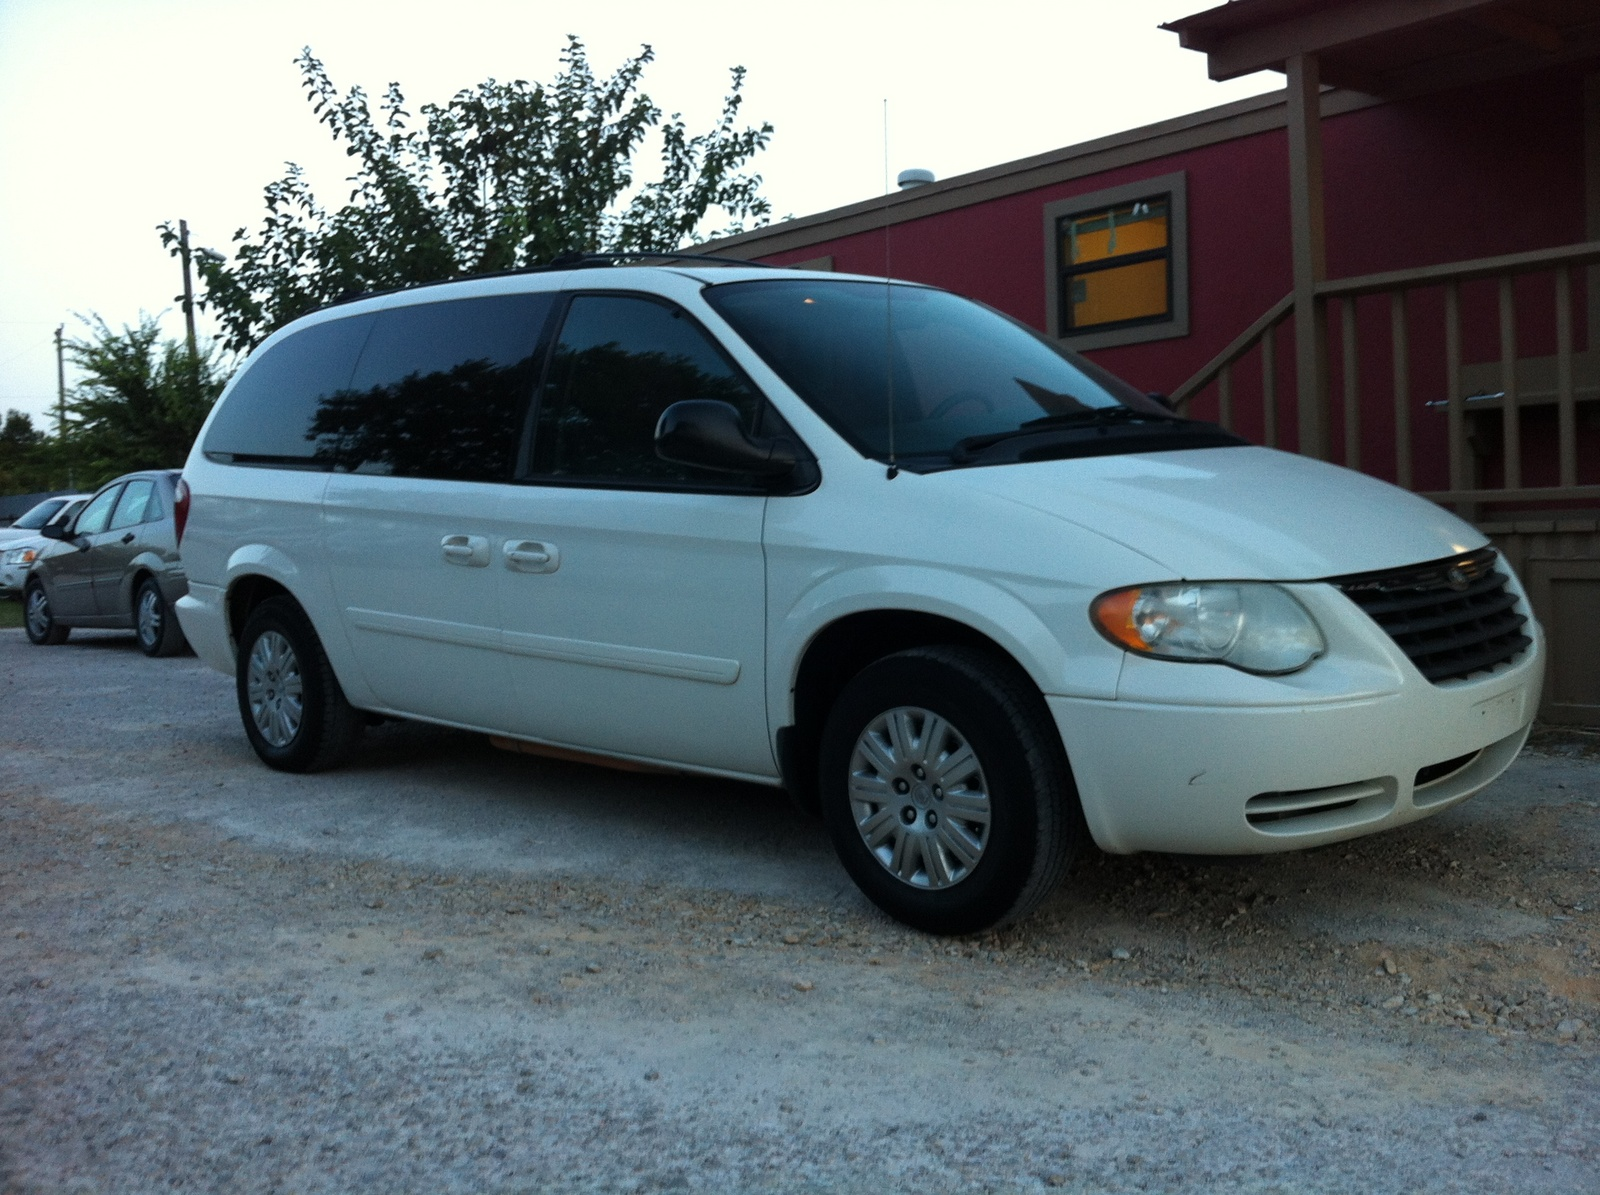 Ford Dealers Near Me >> 2005 Chrysler Town & Country - Pictures - CarGurus